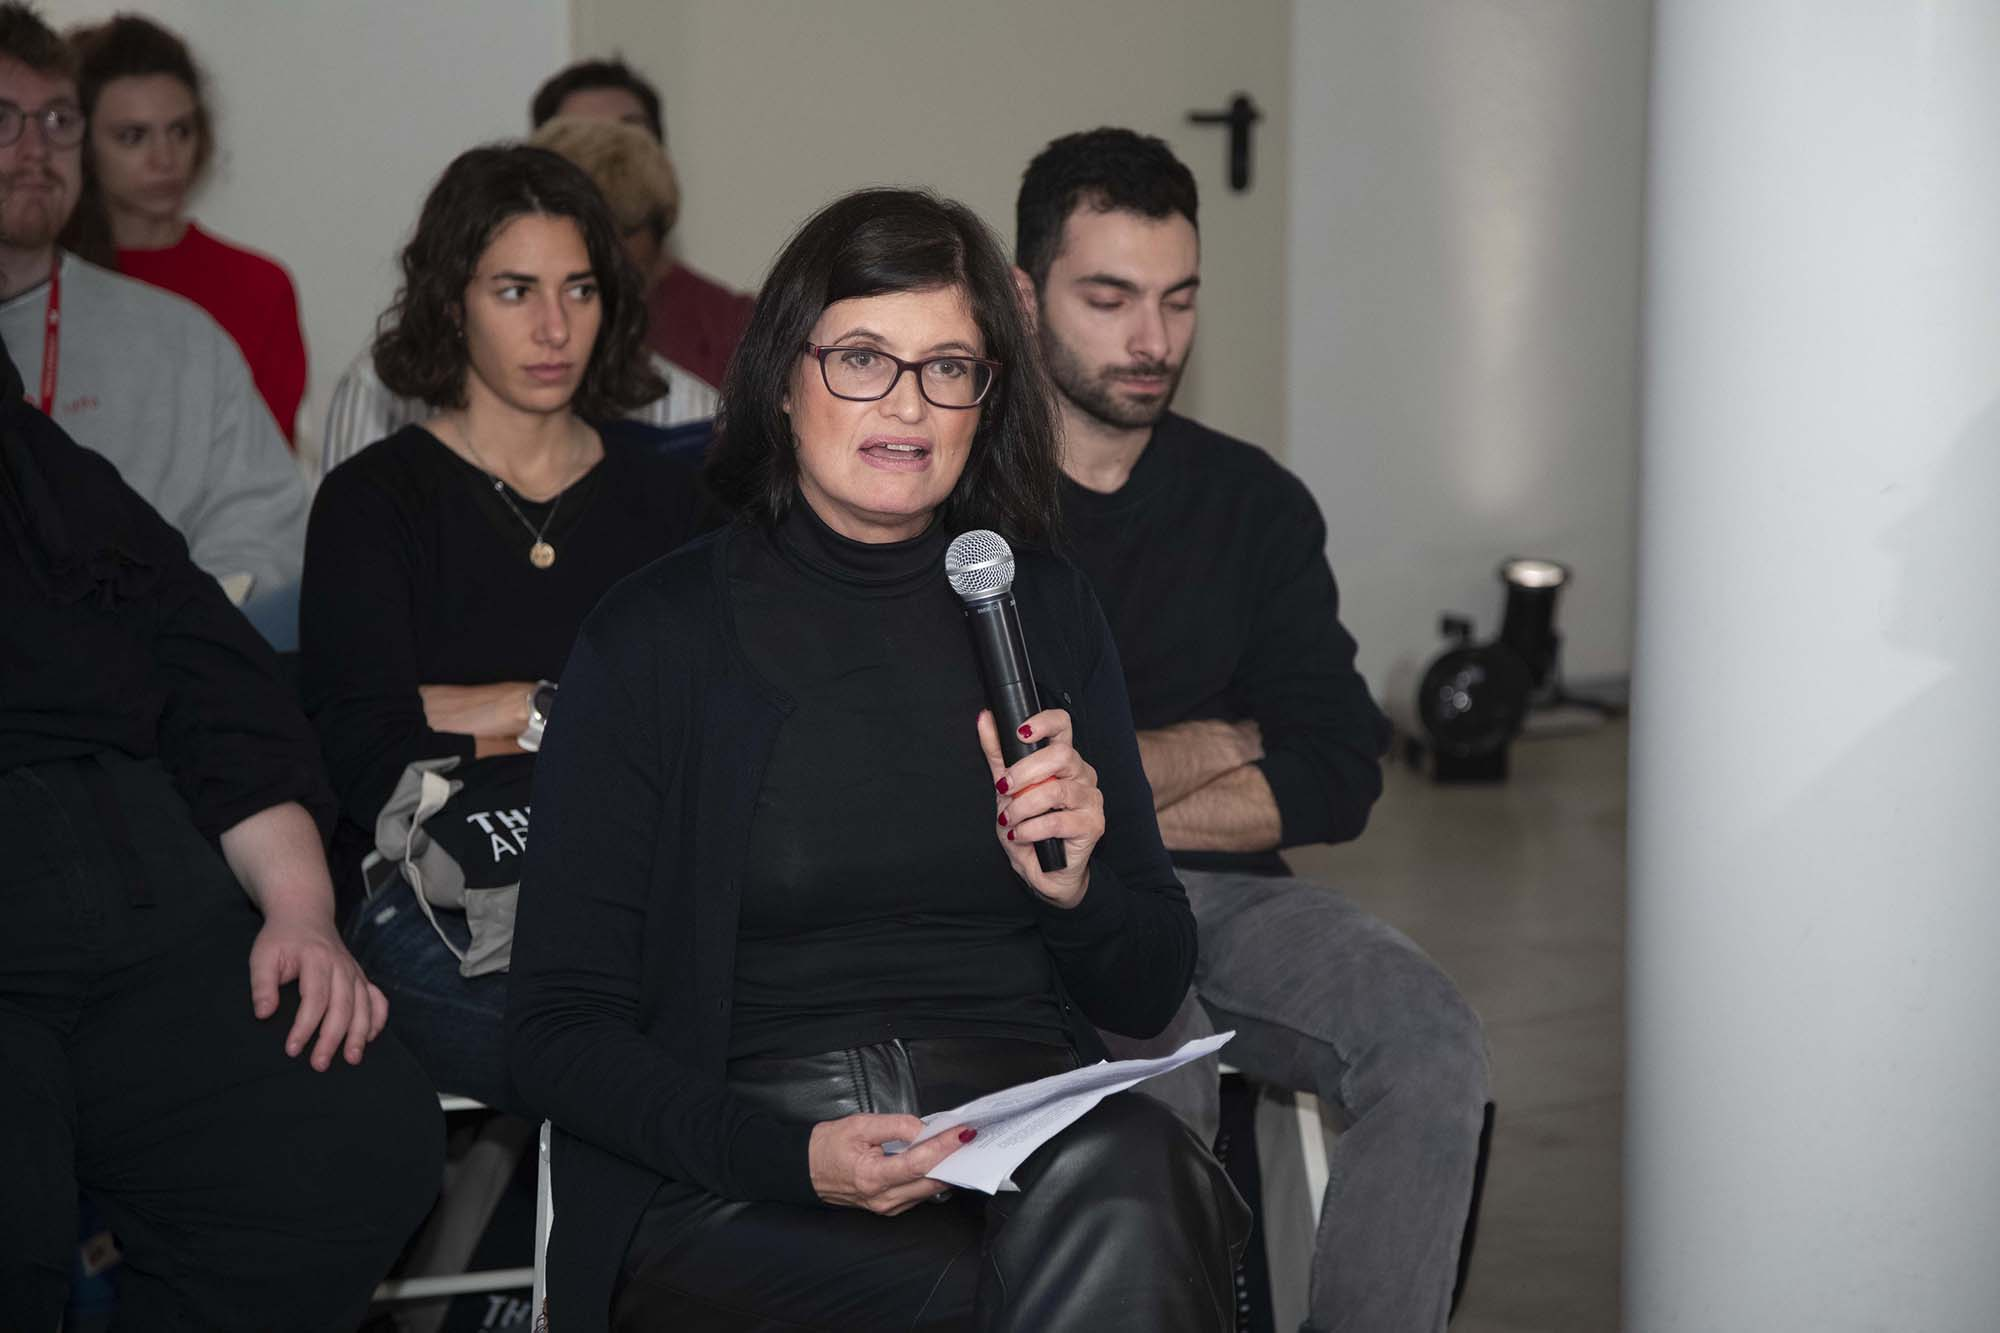 Emma Dexter during The Right to Refuse Therme Forum at British Pavilion during the 2019 Venice Biennale